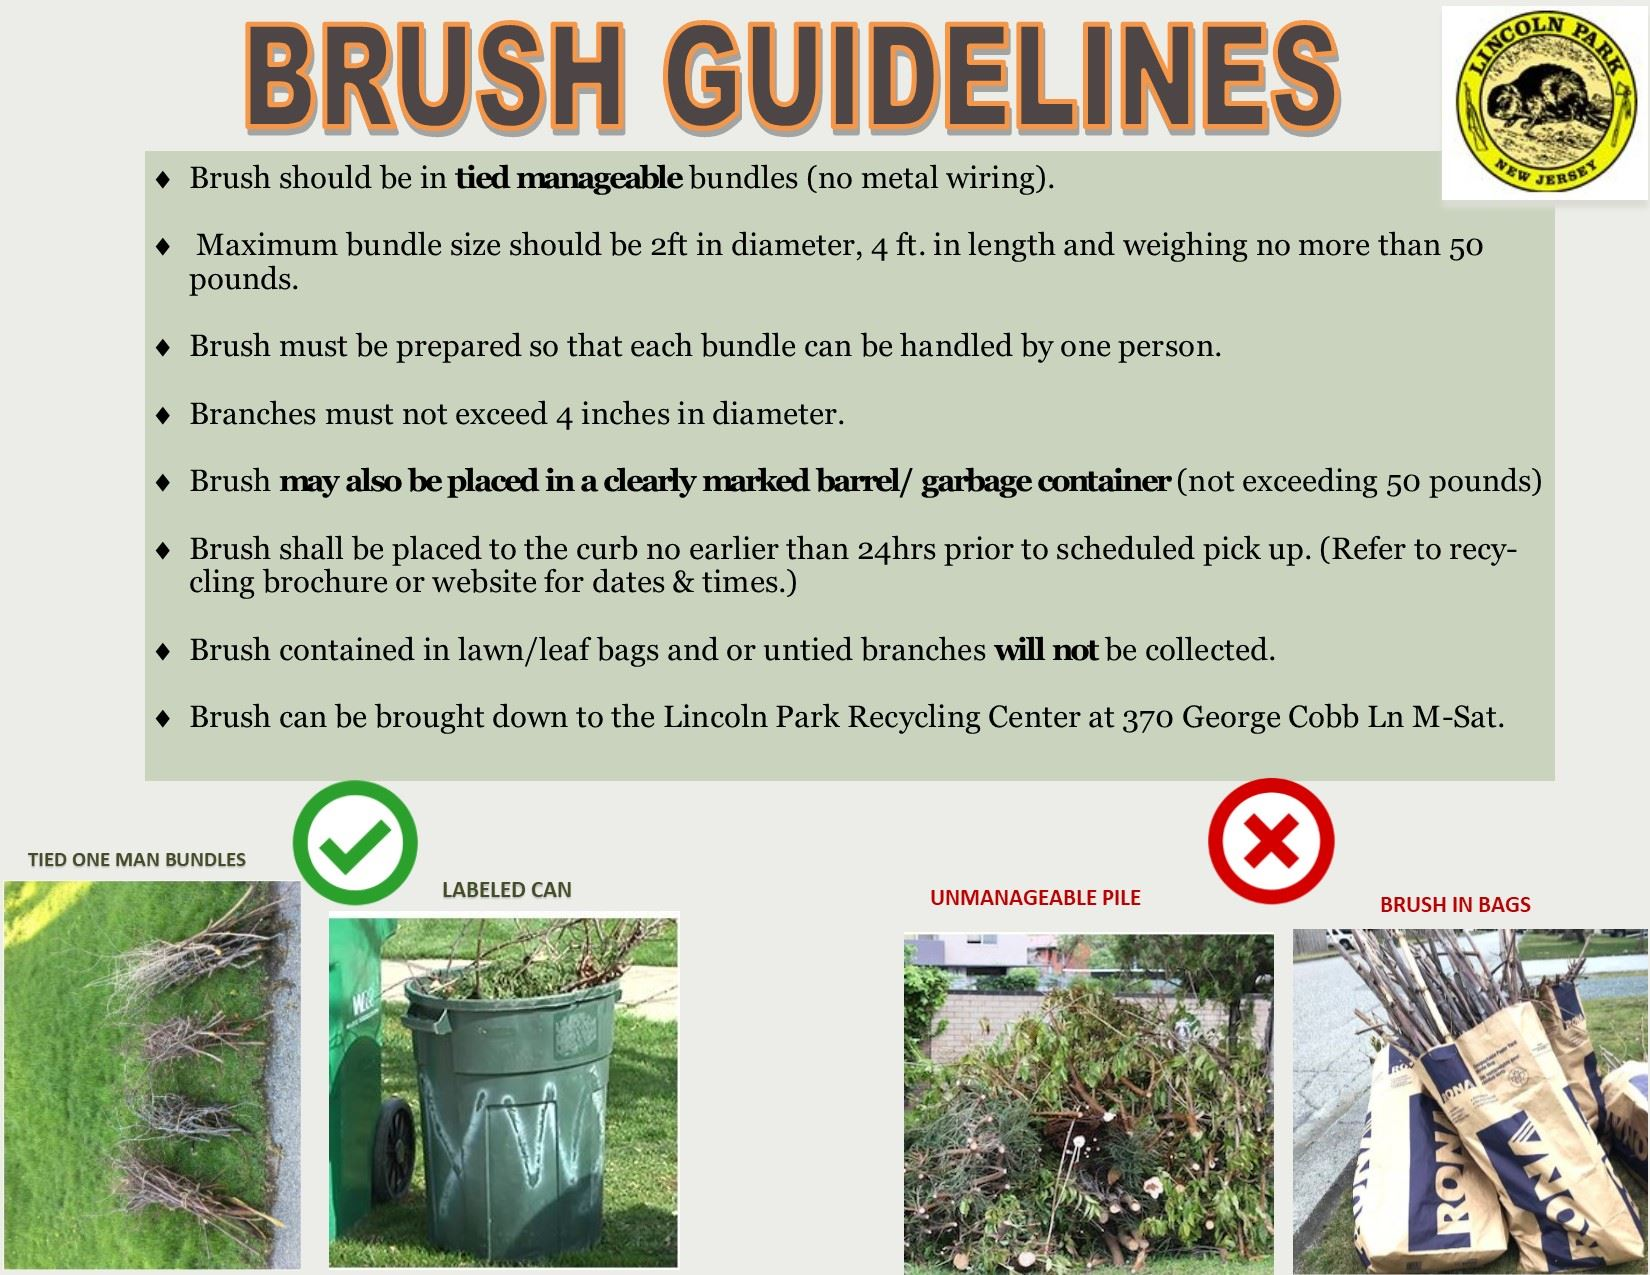 BRUSH FLYER NEW GUIDELINES